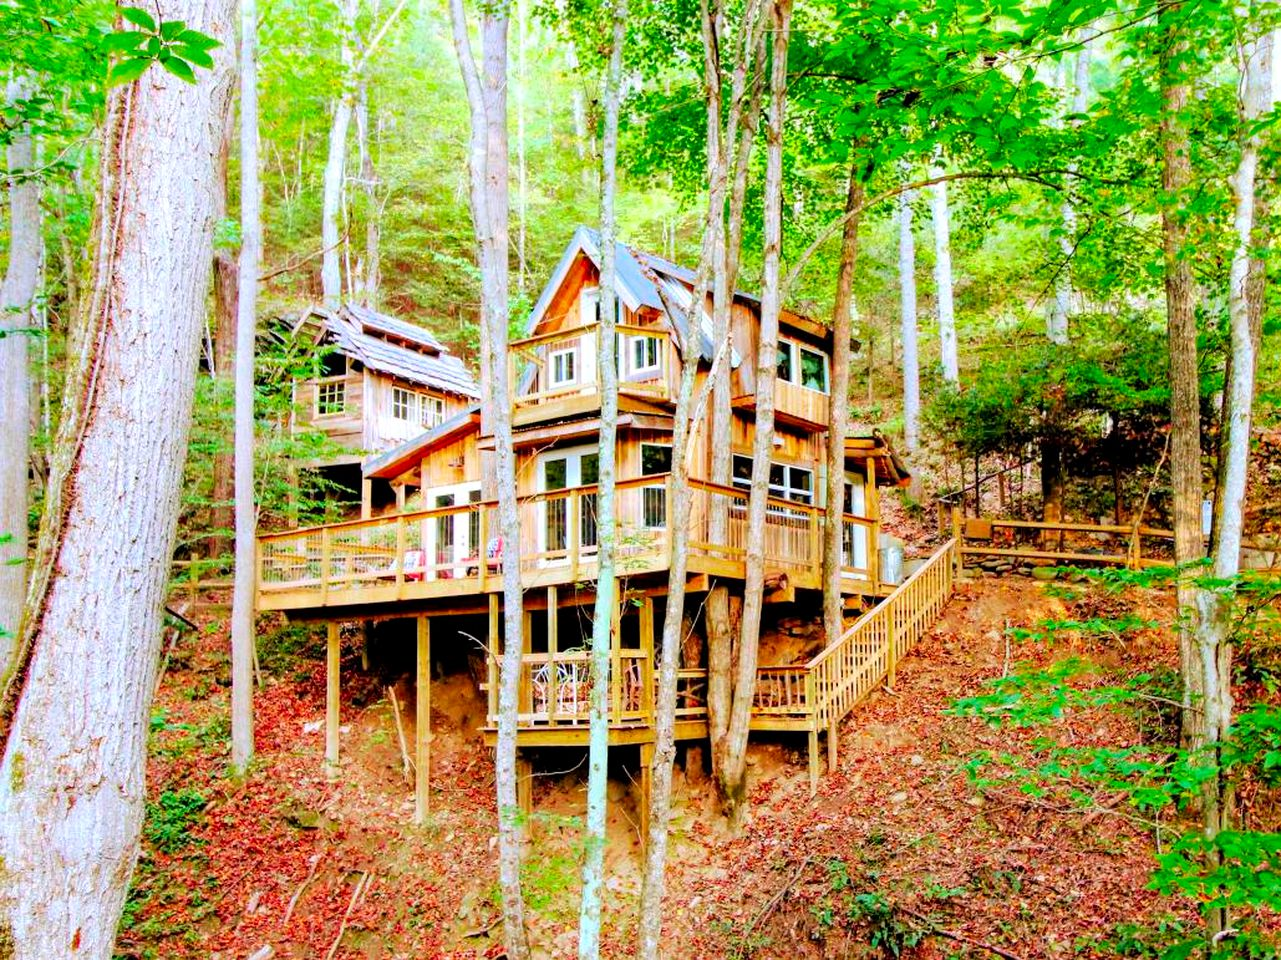 Tree house rentals in Green Mountain, North Carolina, United States